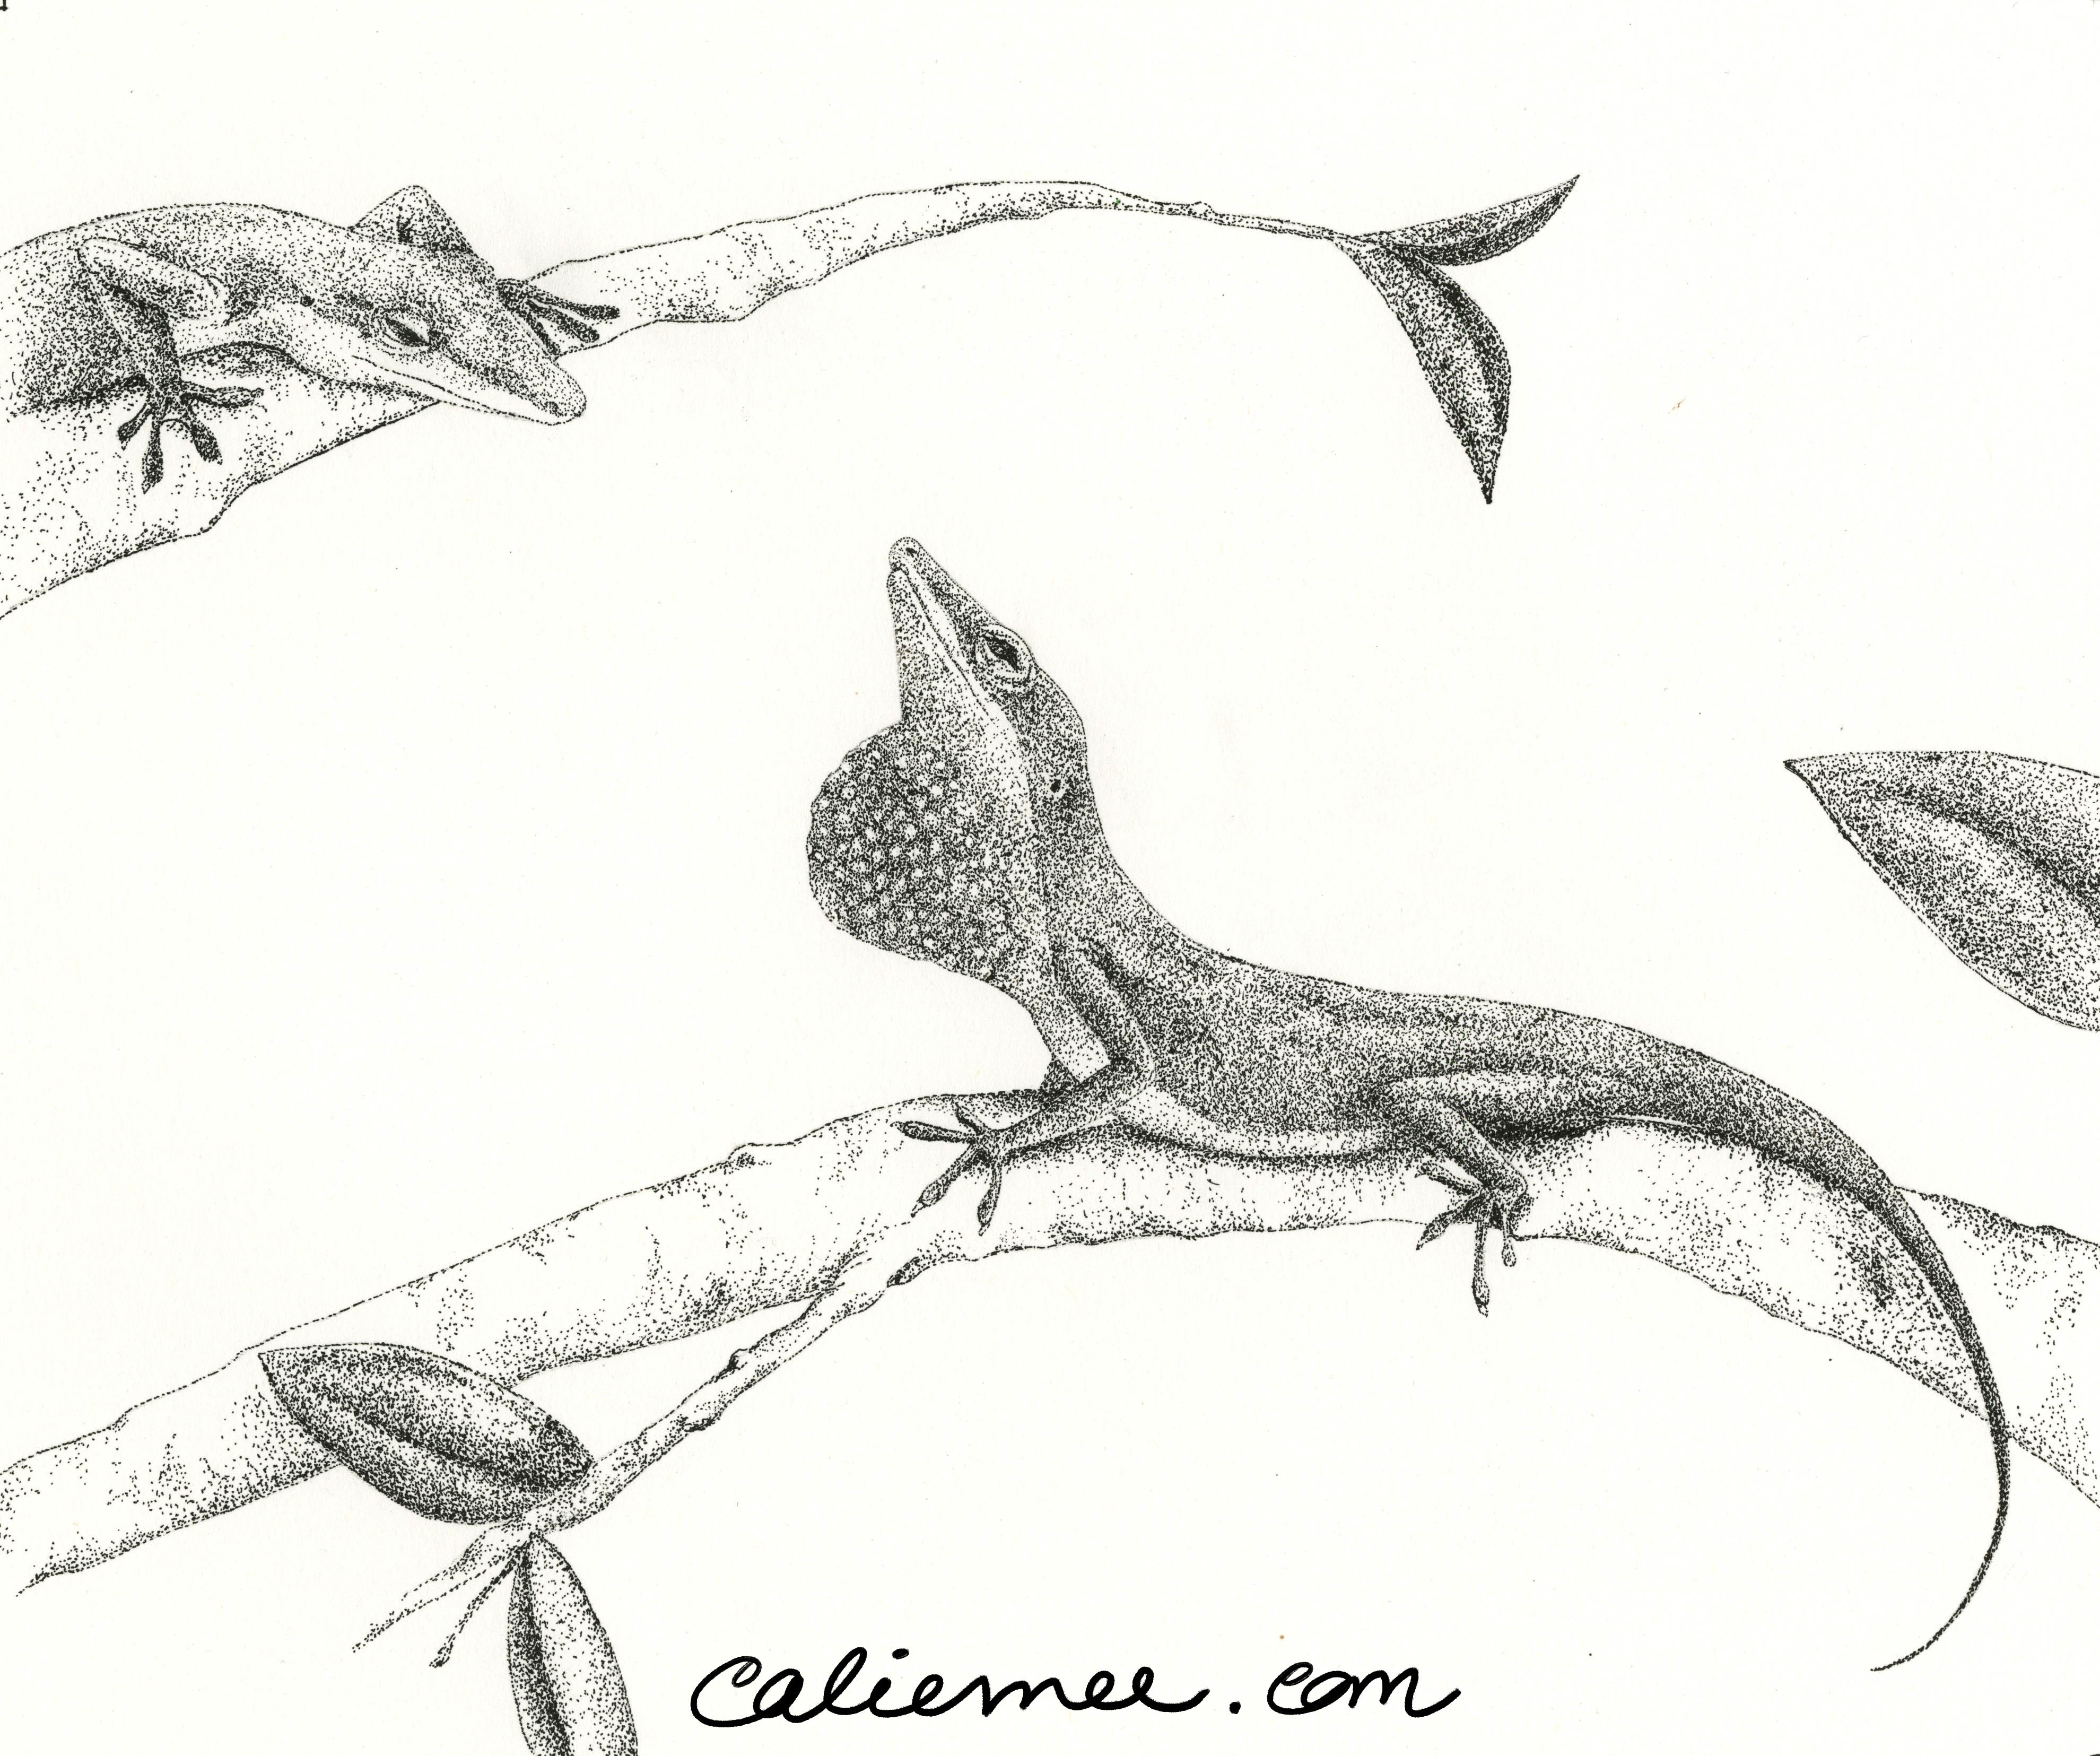 Green Anole Study (2011)